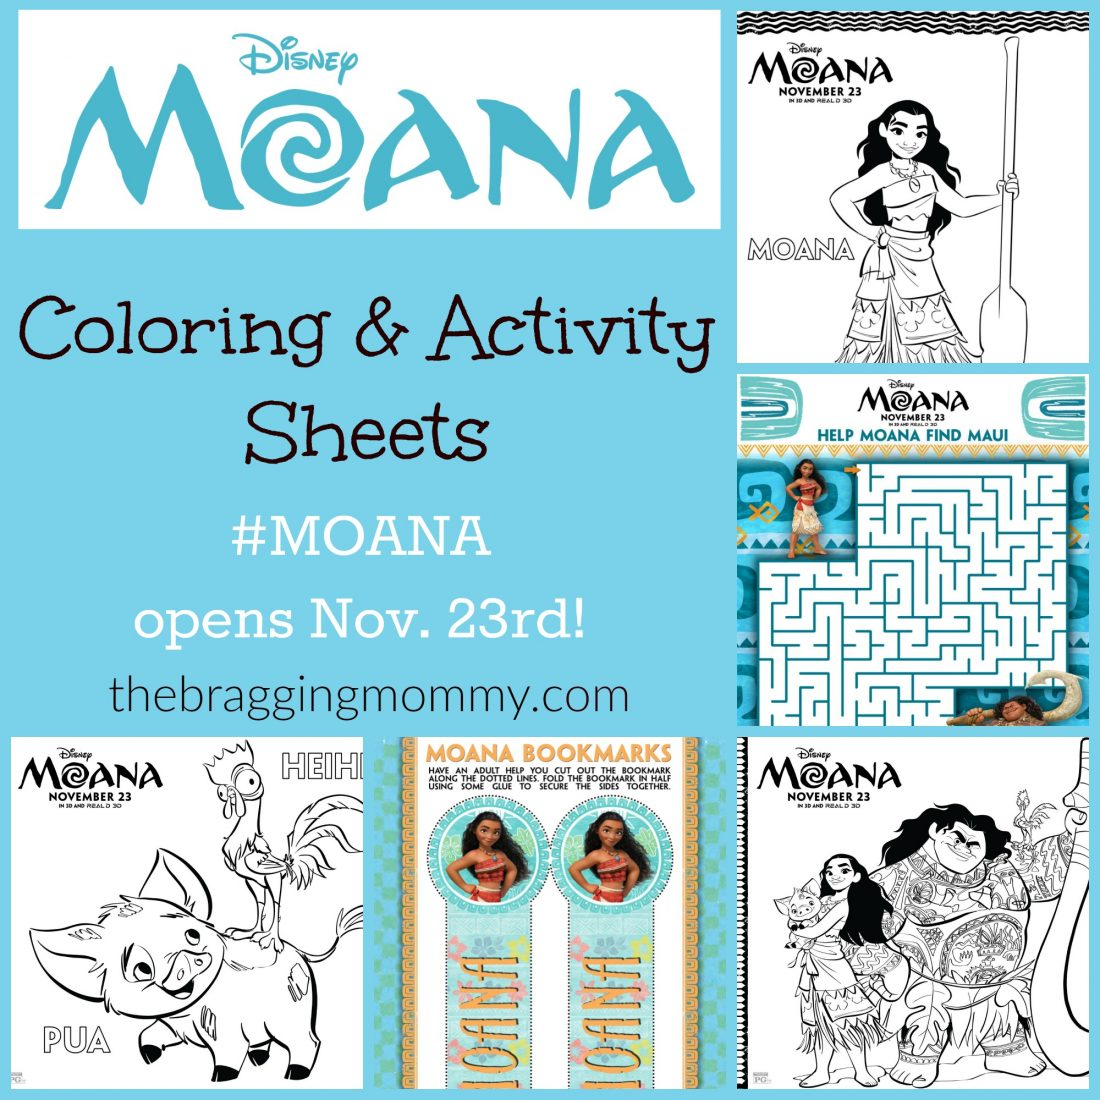 image about Moana Sail Printable identify Cost-free Printable MOANA Coloring and Recreation Sheets! #Moana